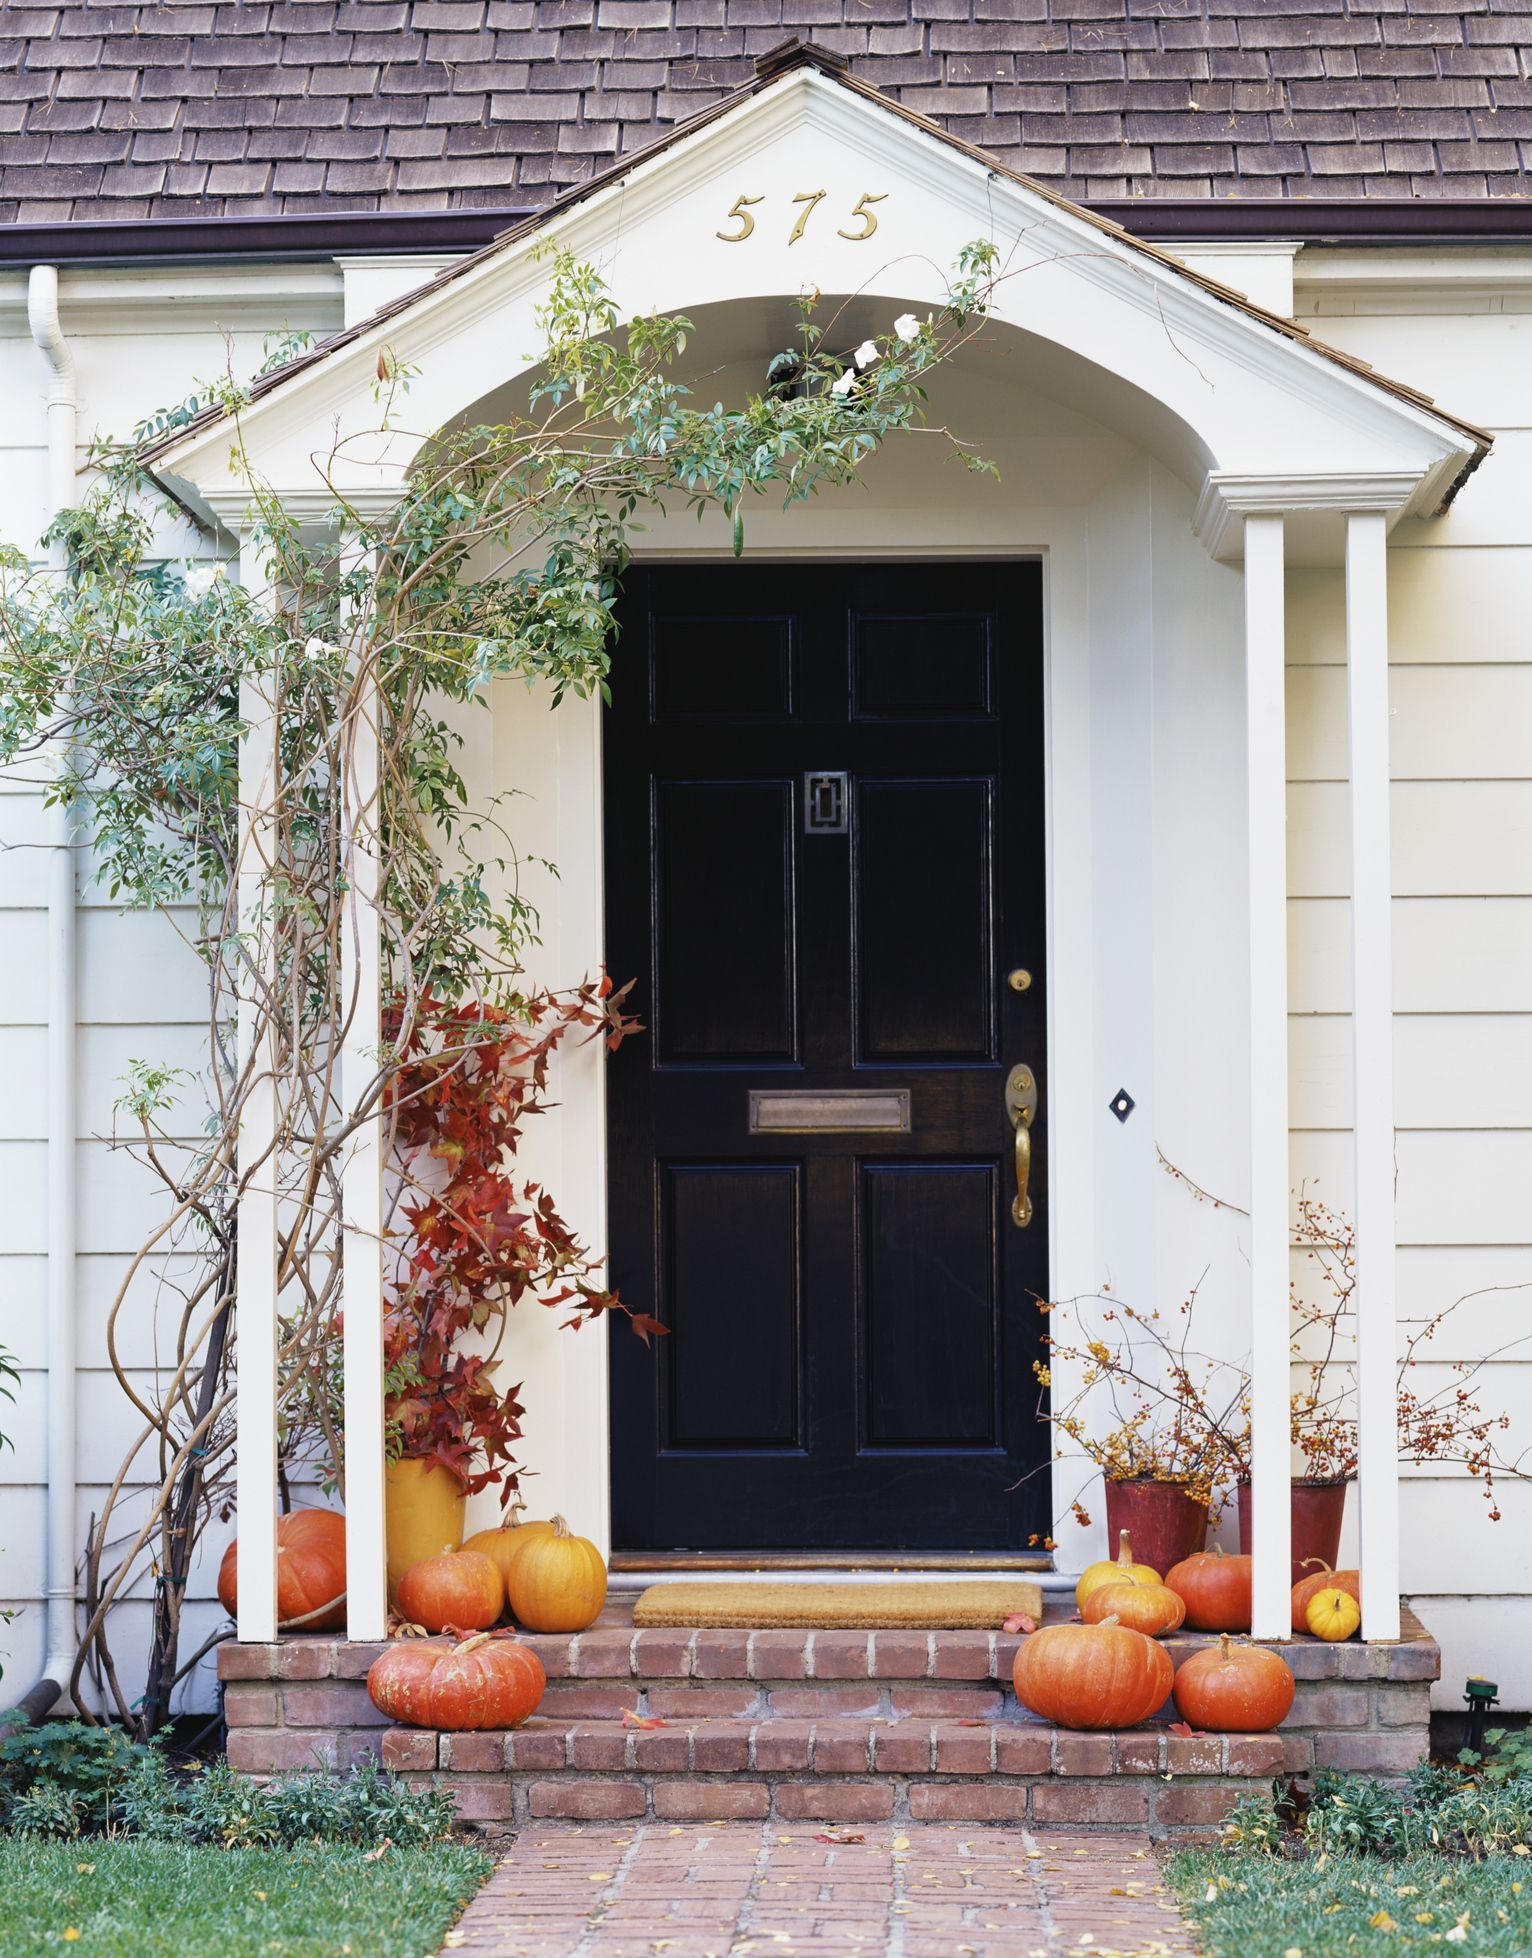 getty images the classic pumpkin lined porch